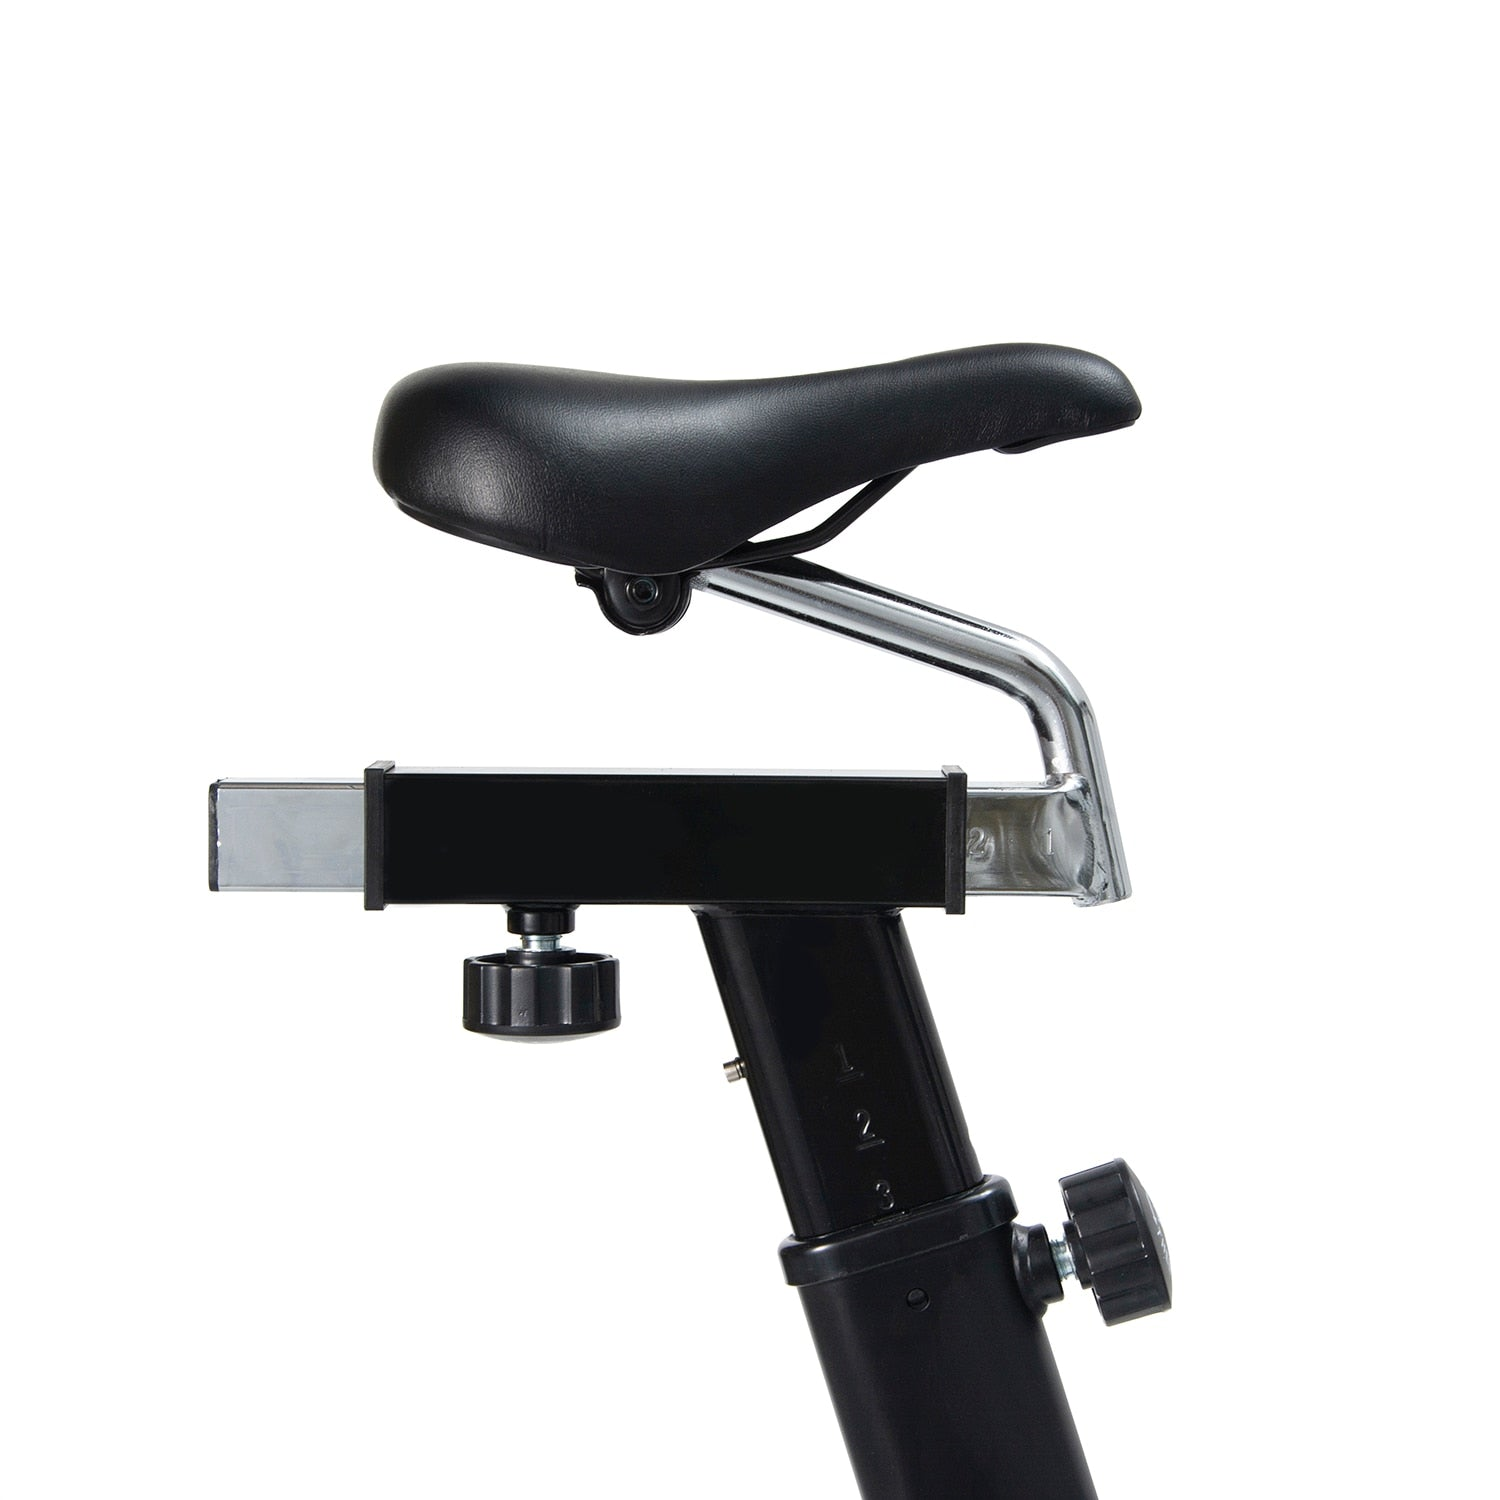 CBK1901 Indoor Cycling Bikes 2-way Adjustable Handlebars for Home Gym